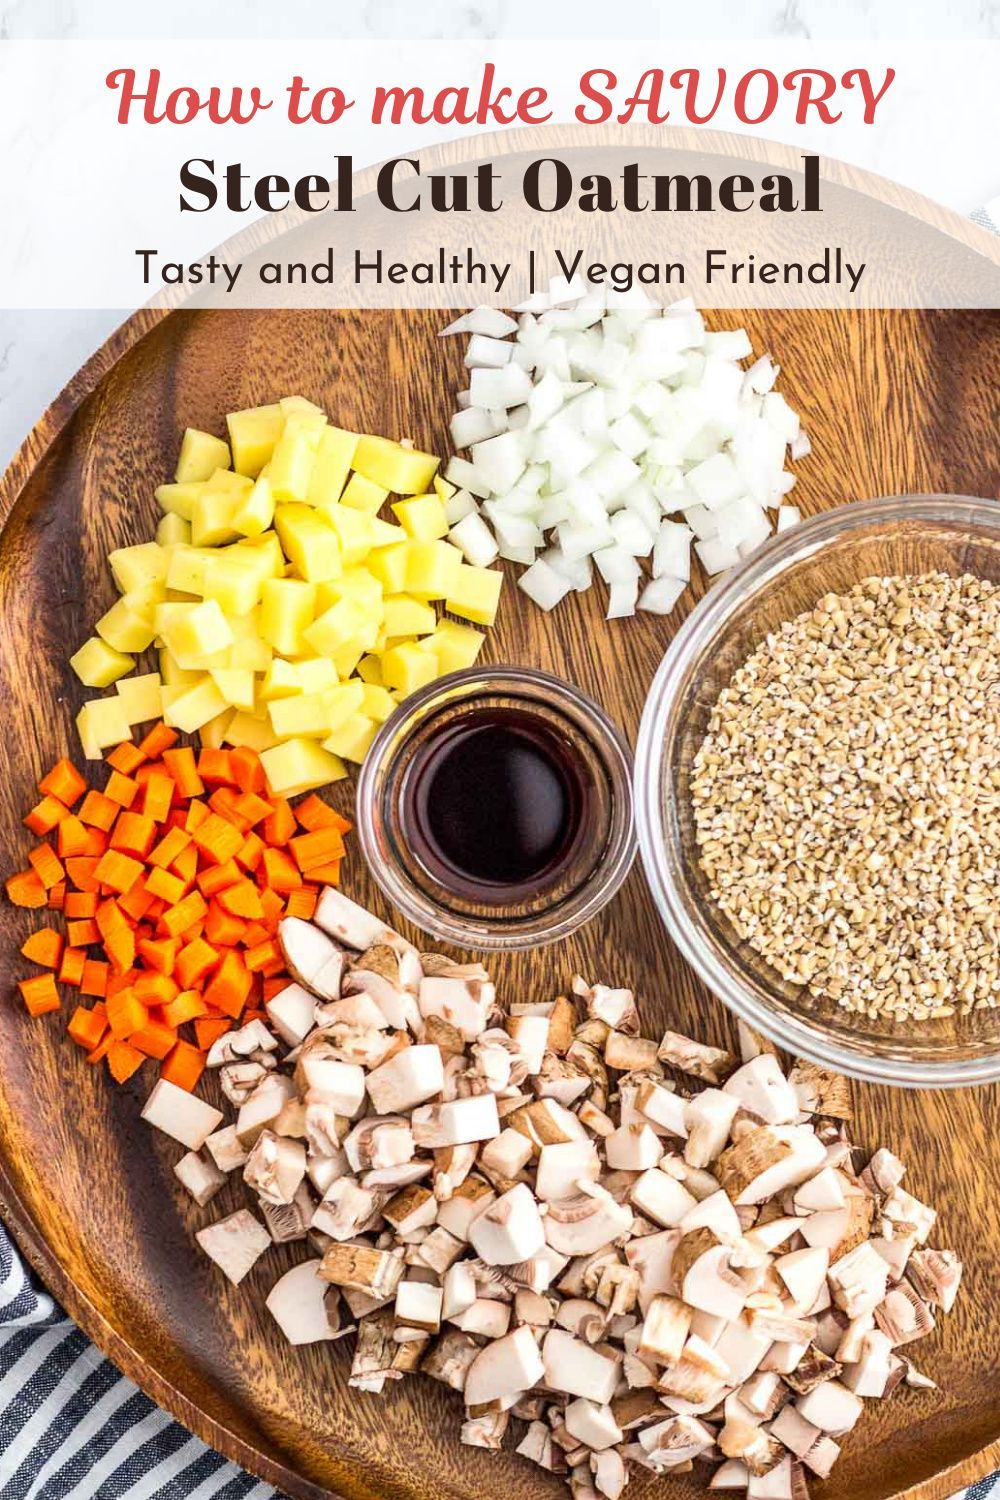 How to make Savory Steel Cut Oatmeal - Learn how to make delicious savory oatmeal with steel cut oats and vegetables. Healthy and nutritious breakfast that is also well suited for lunch and dinner! This savory oatmeal is vegan friendly! #healthyoatmealrecipes #steelcutoats #savoryoatmeal #veganoatmeal #oatmealrecipes